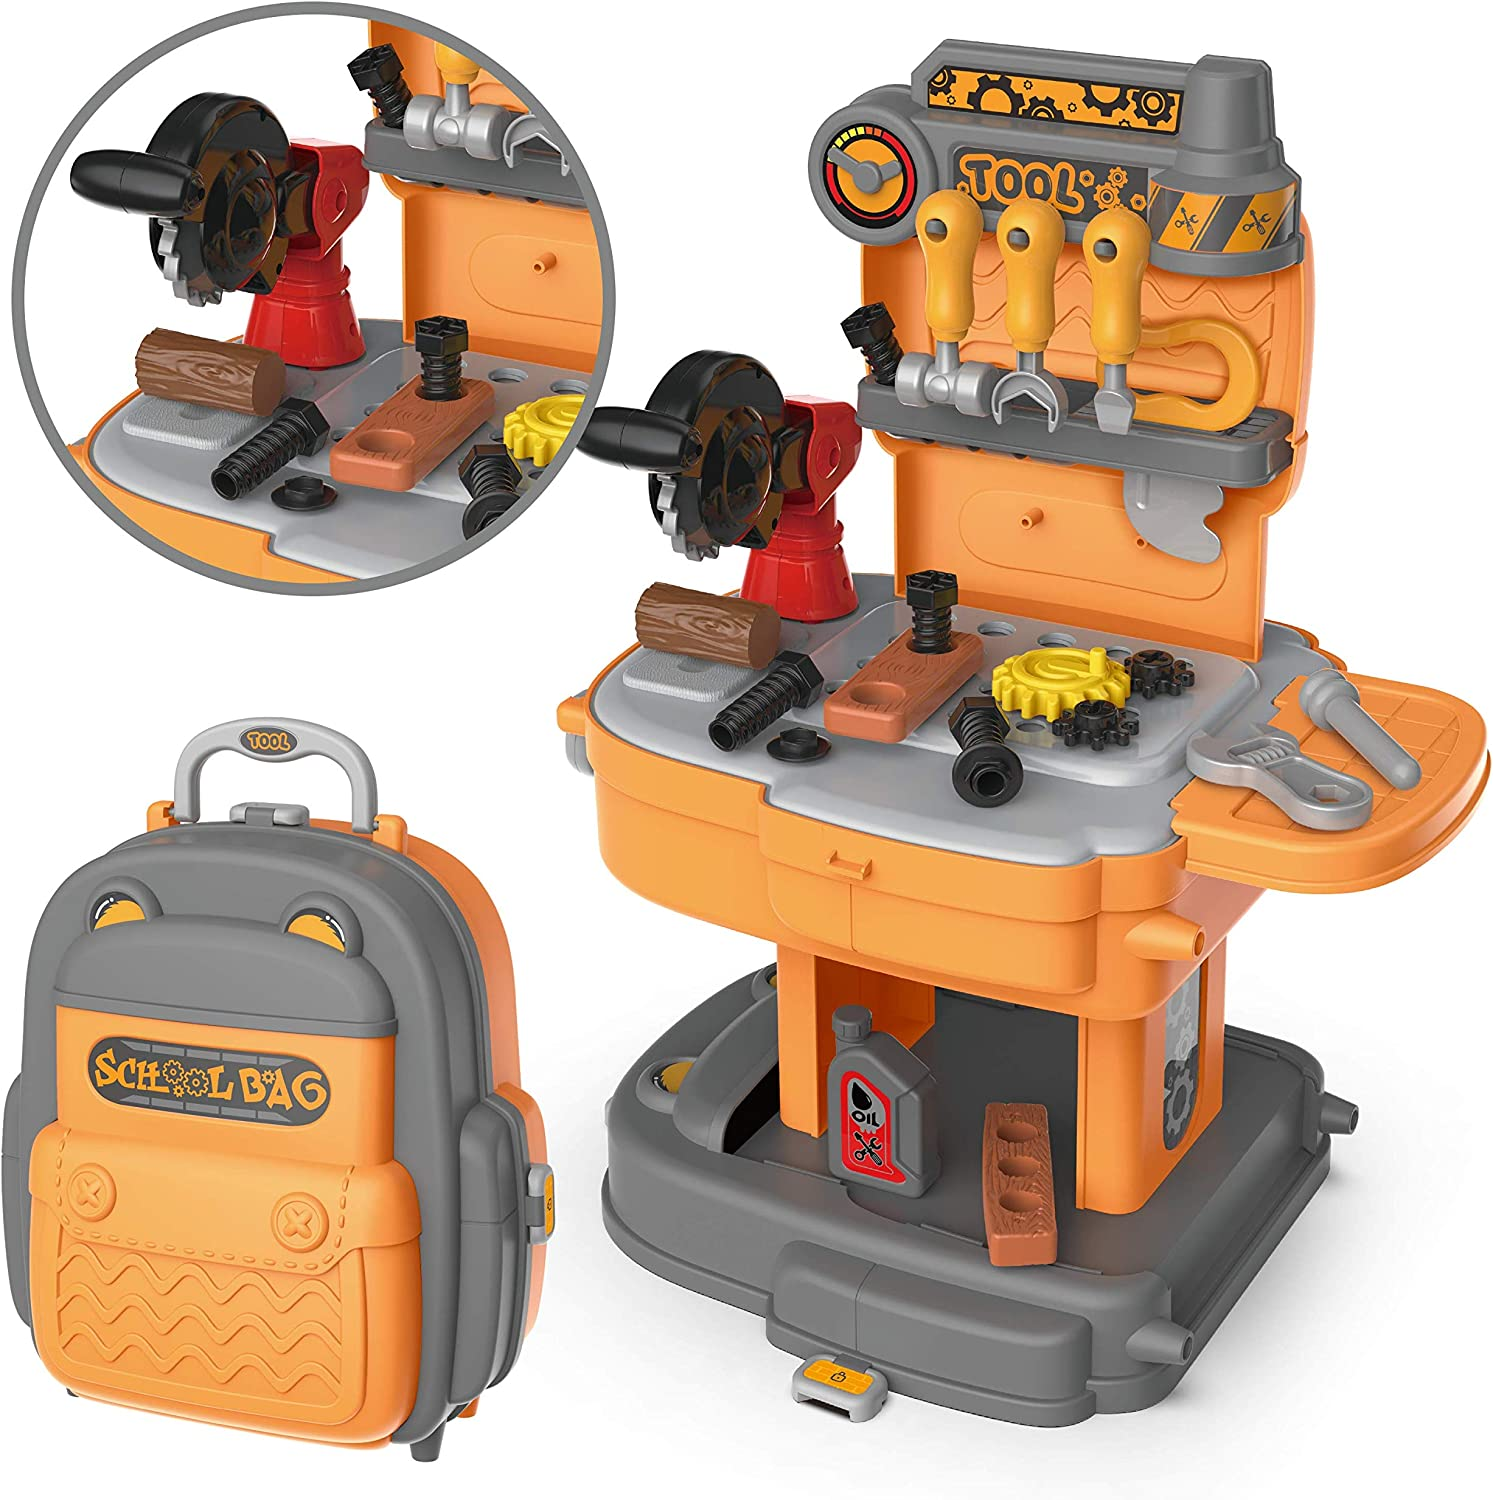 JOYIN Little Tool Workbench with Portable Backpack Kids Toy Construction Tool Toy Set Including Toys Screw Nuts Hammers and More Tool Accessories